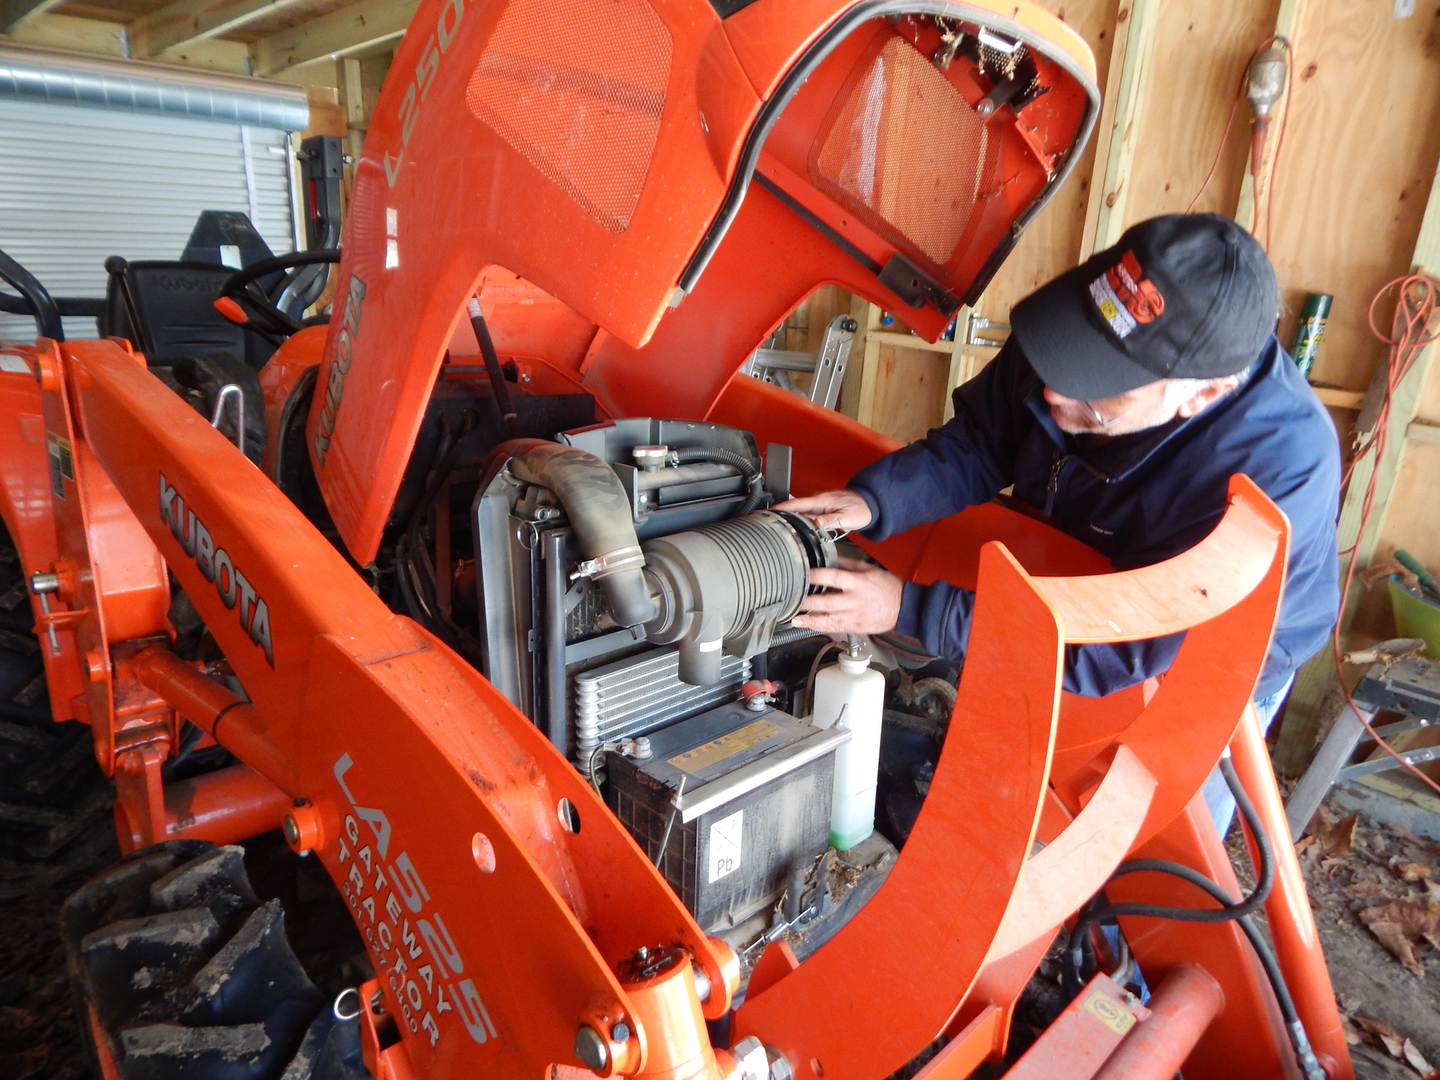 Robert Braswell working on a piece of Kubota equipment